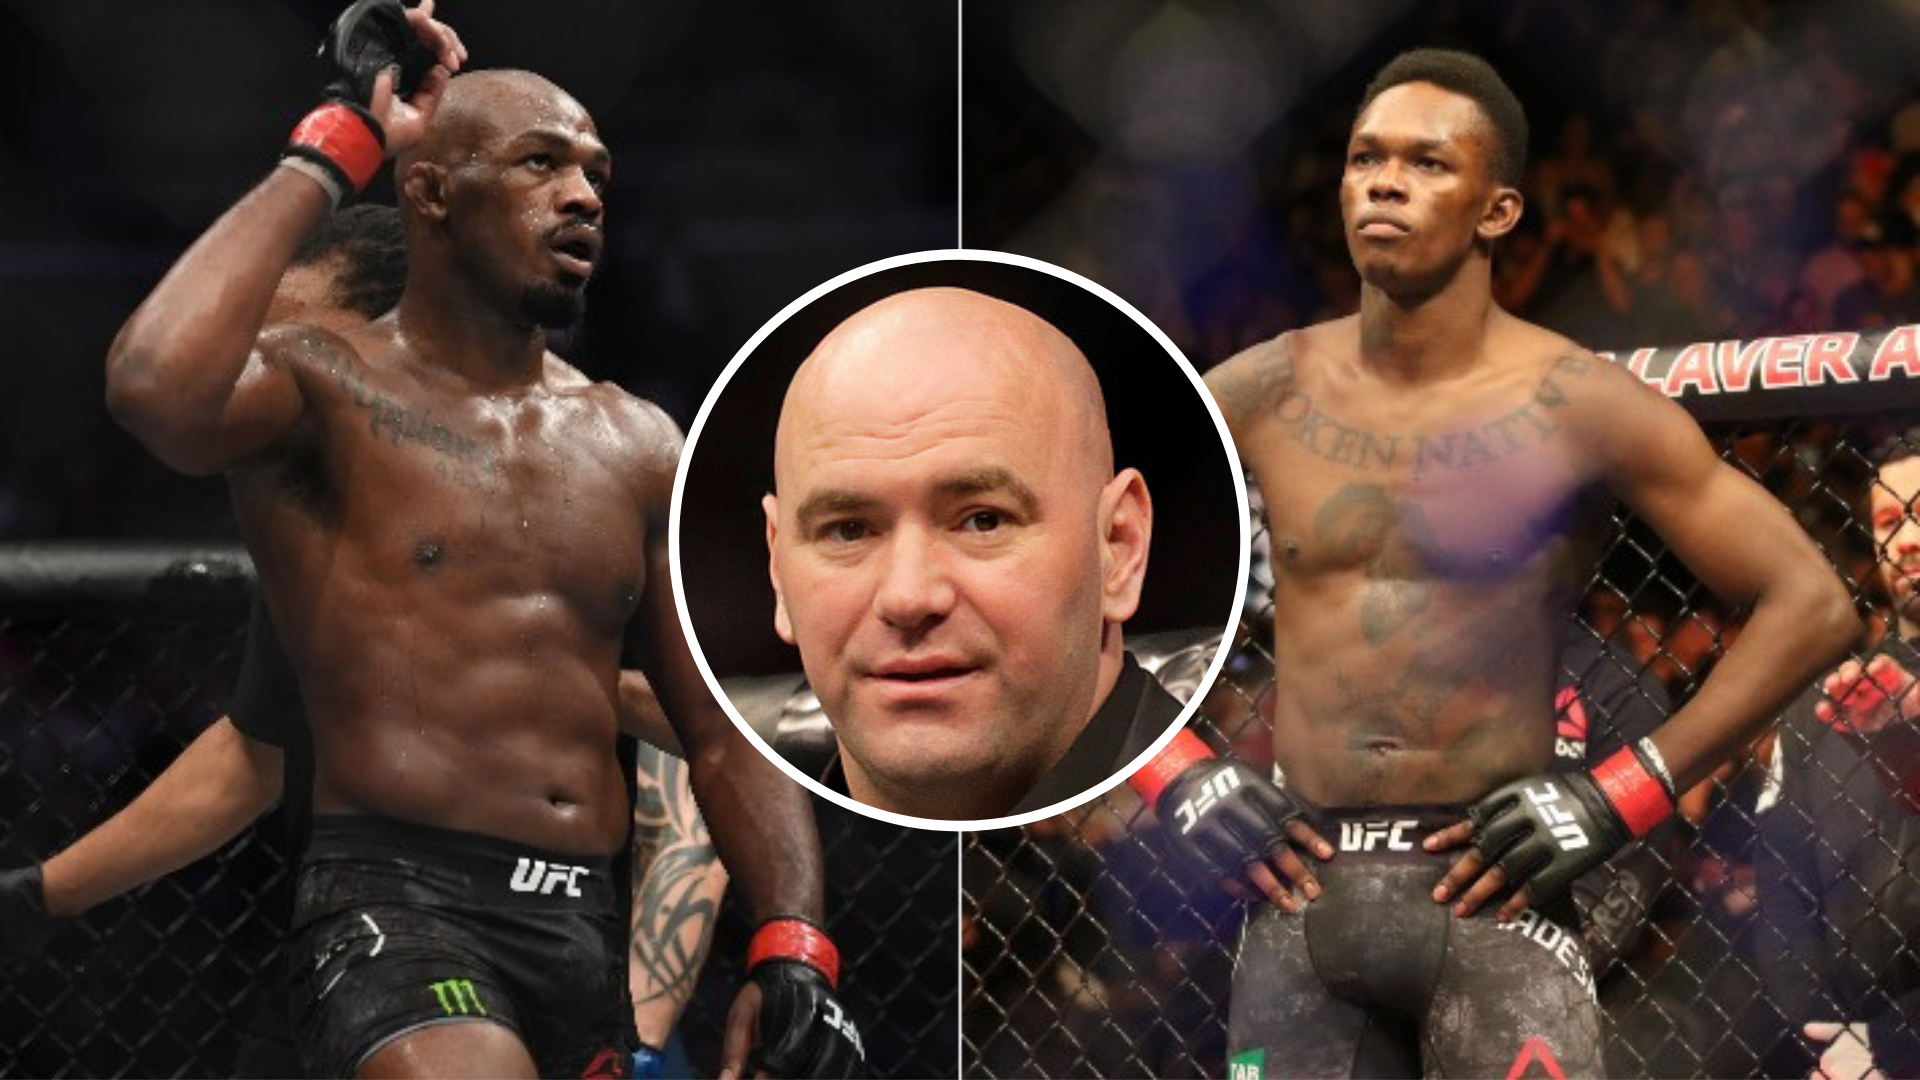 Dana White says Jon Jones and Israel Adesanya should fight at light heavyweight - Jon Jones